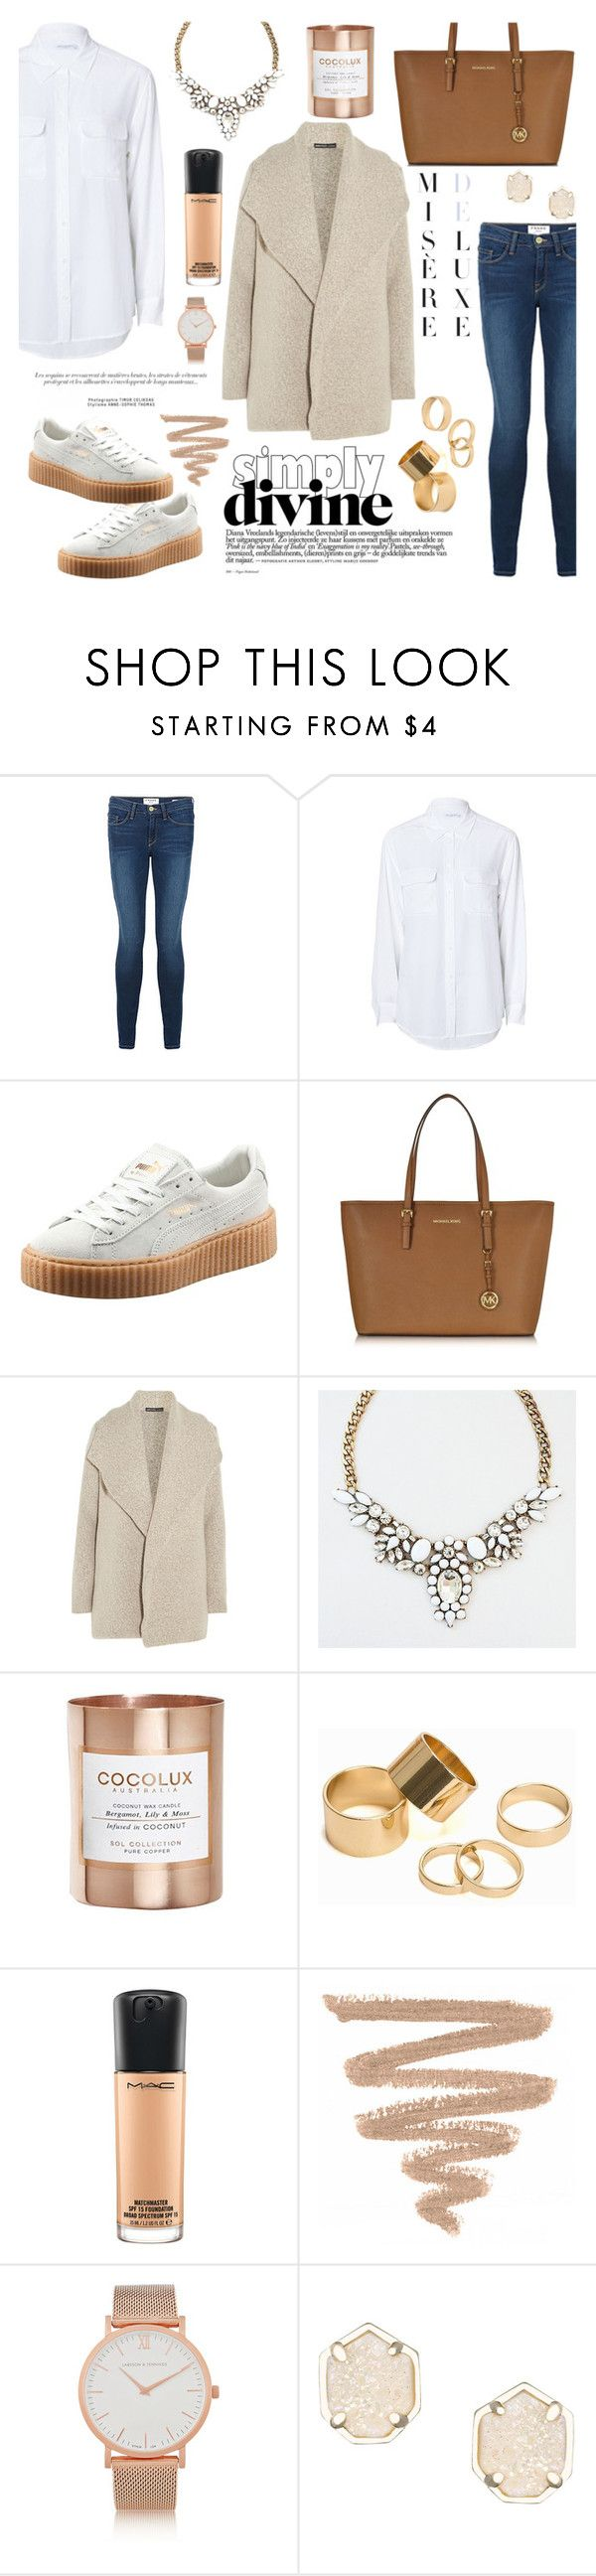 """Jeans and shirts"" by deckerandlee on Polyvore featuring Frame Denim, Equipment, Puma, Michael Kors, James Perse, Cocolux, Pieces, MAC Cosmetics, Larsson & Jennings and Kendra Scott"